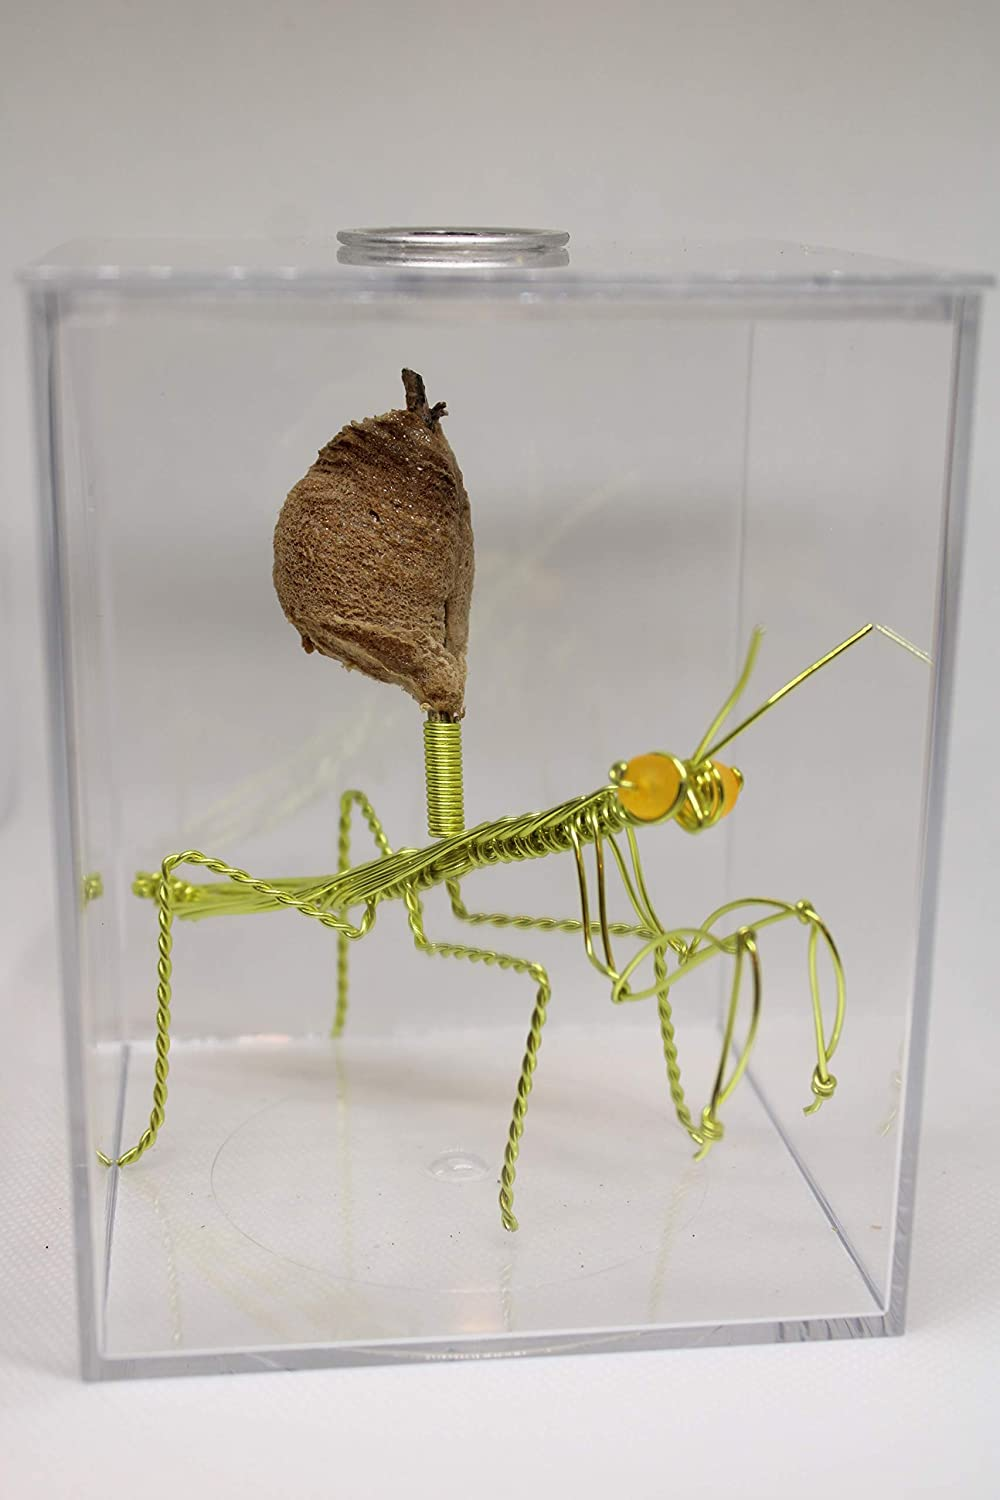 Live Chinese Ootheca Praying Mantis Egg Case + Crystal Clear Hatching Habitat Incubator Kit (Neo Green Wire Mantis)